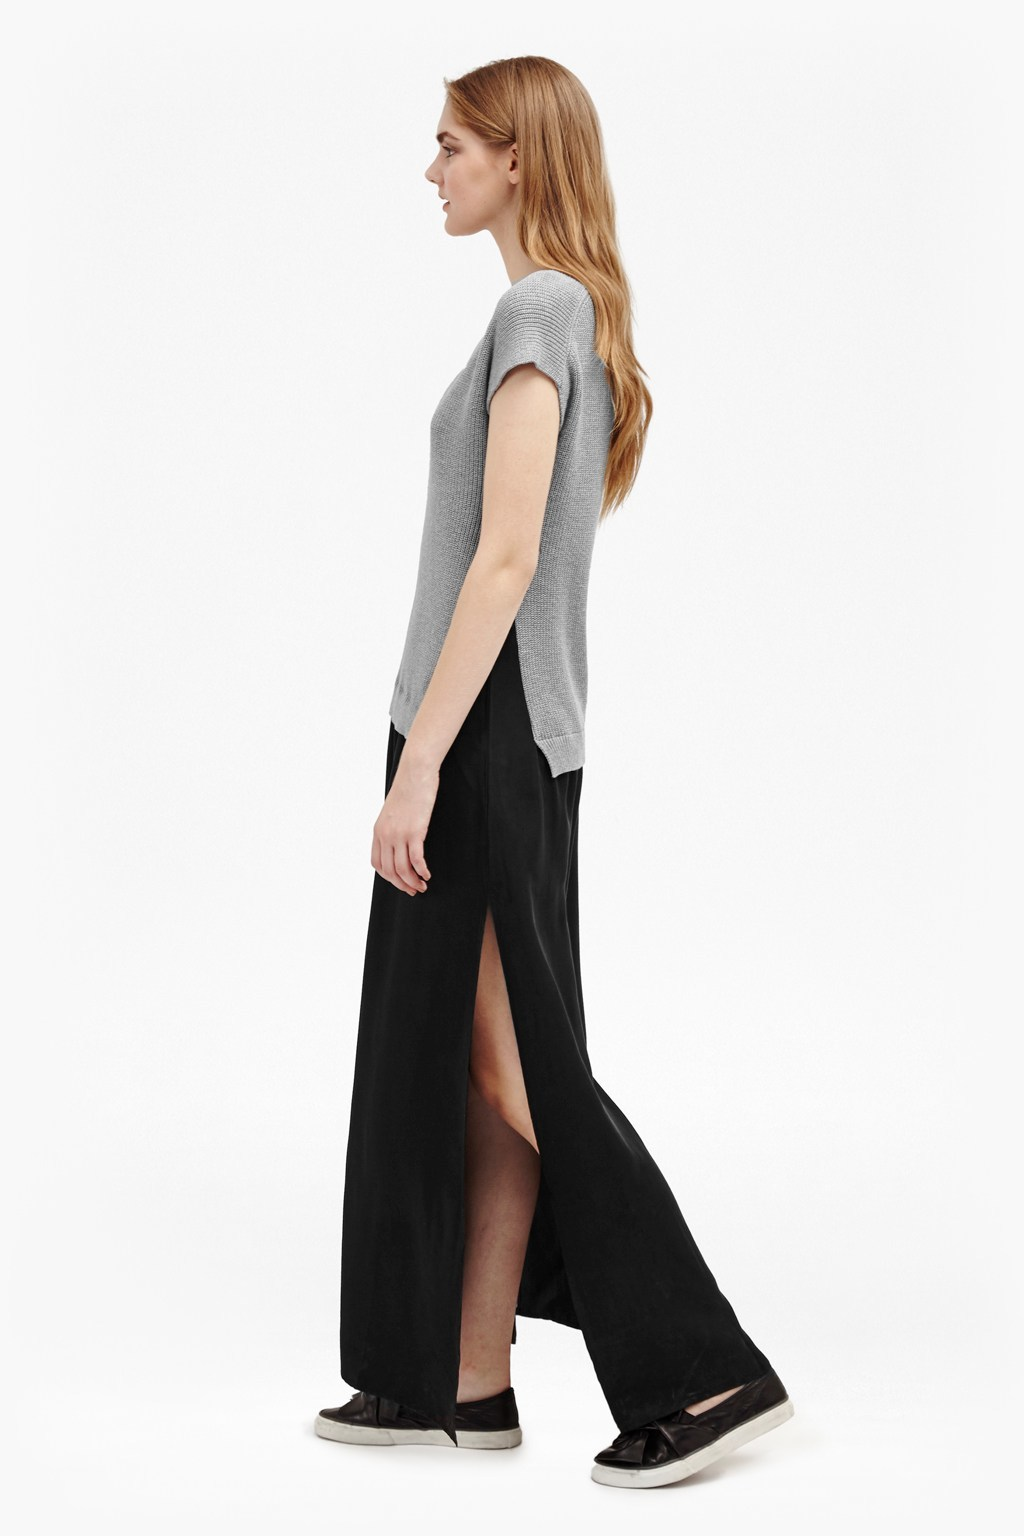 Talulah Knits Mix Maxi Dress Grey Mel/Black - neckline: v-neck; pattern: plain; style: maxi dress; hip detail: draws attention to hips; secondary colour: mid grey; predominant colour: black; occasions: casual; length: floor length; fit: body skimming; fibres: cotton - mix; sleeve length: short sleeve; sleeve style: standard; texture group: knits/crochet; pattern type: fabric; multicoloured: multicoloured; wardrobe: basic; season: a/w 2016